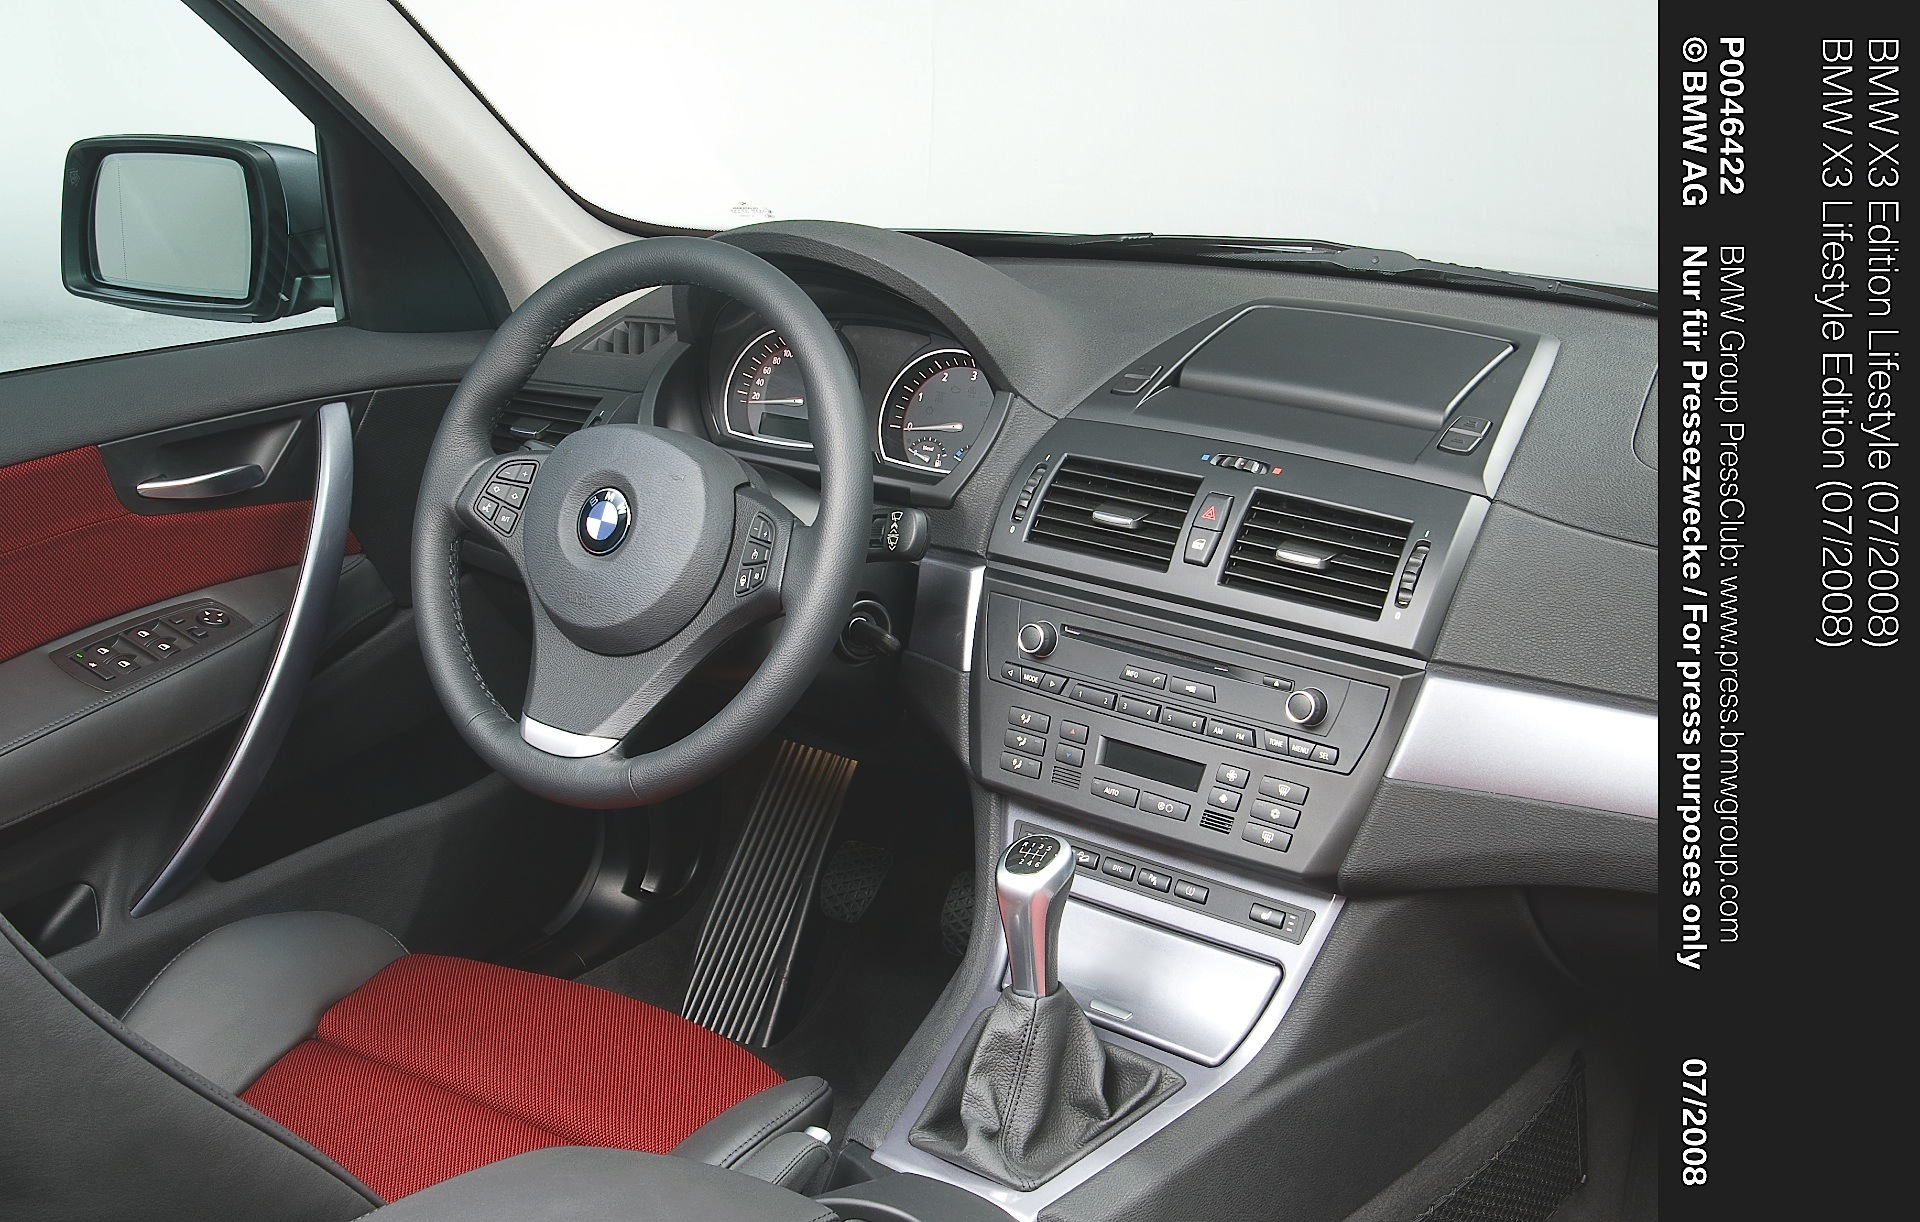 BMW X3 (E83) - 2007, 2008, 2009, 2010 - autoevolution